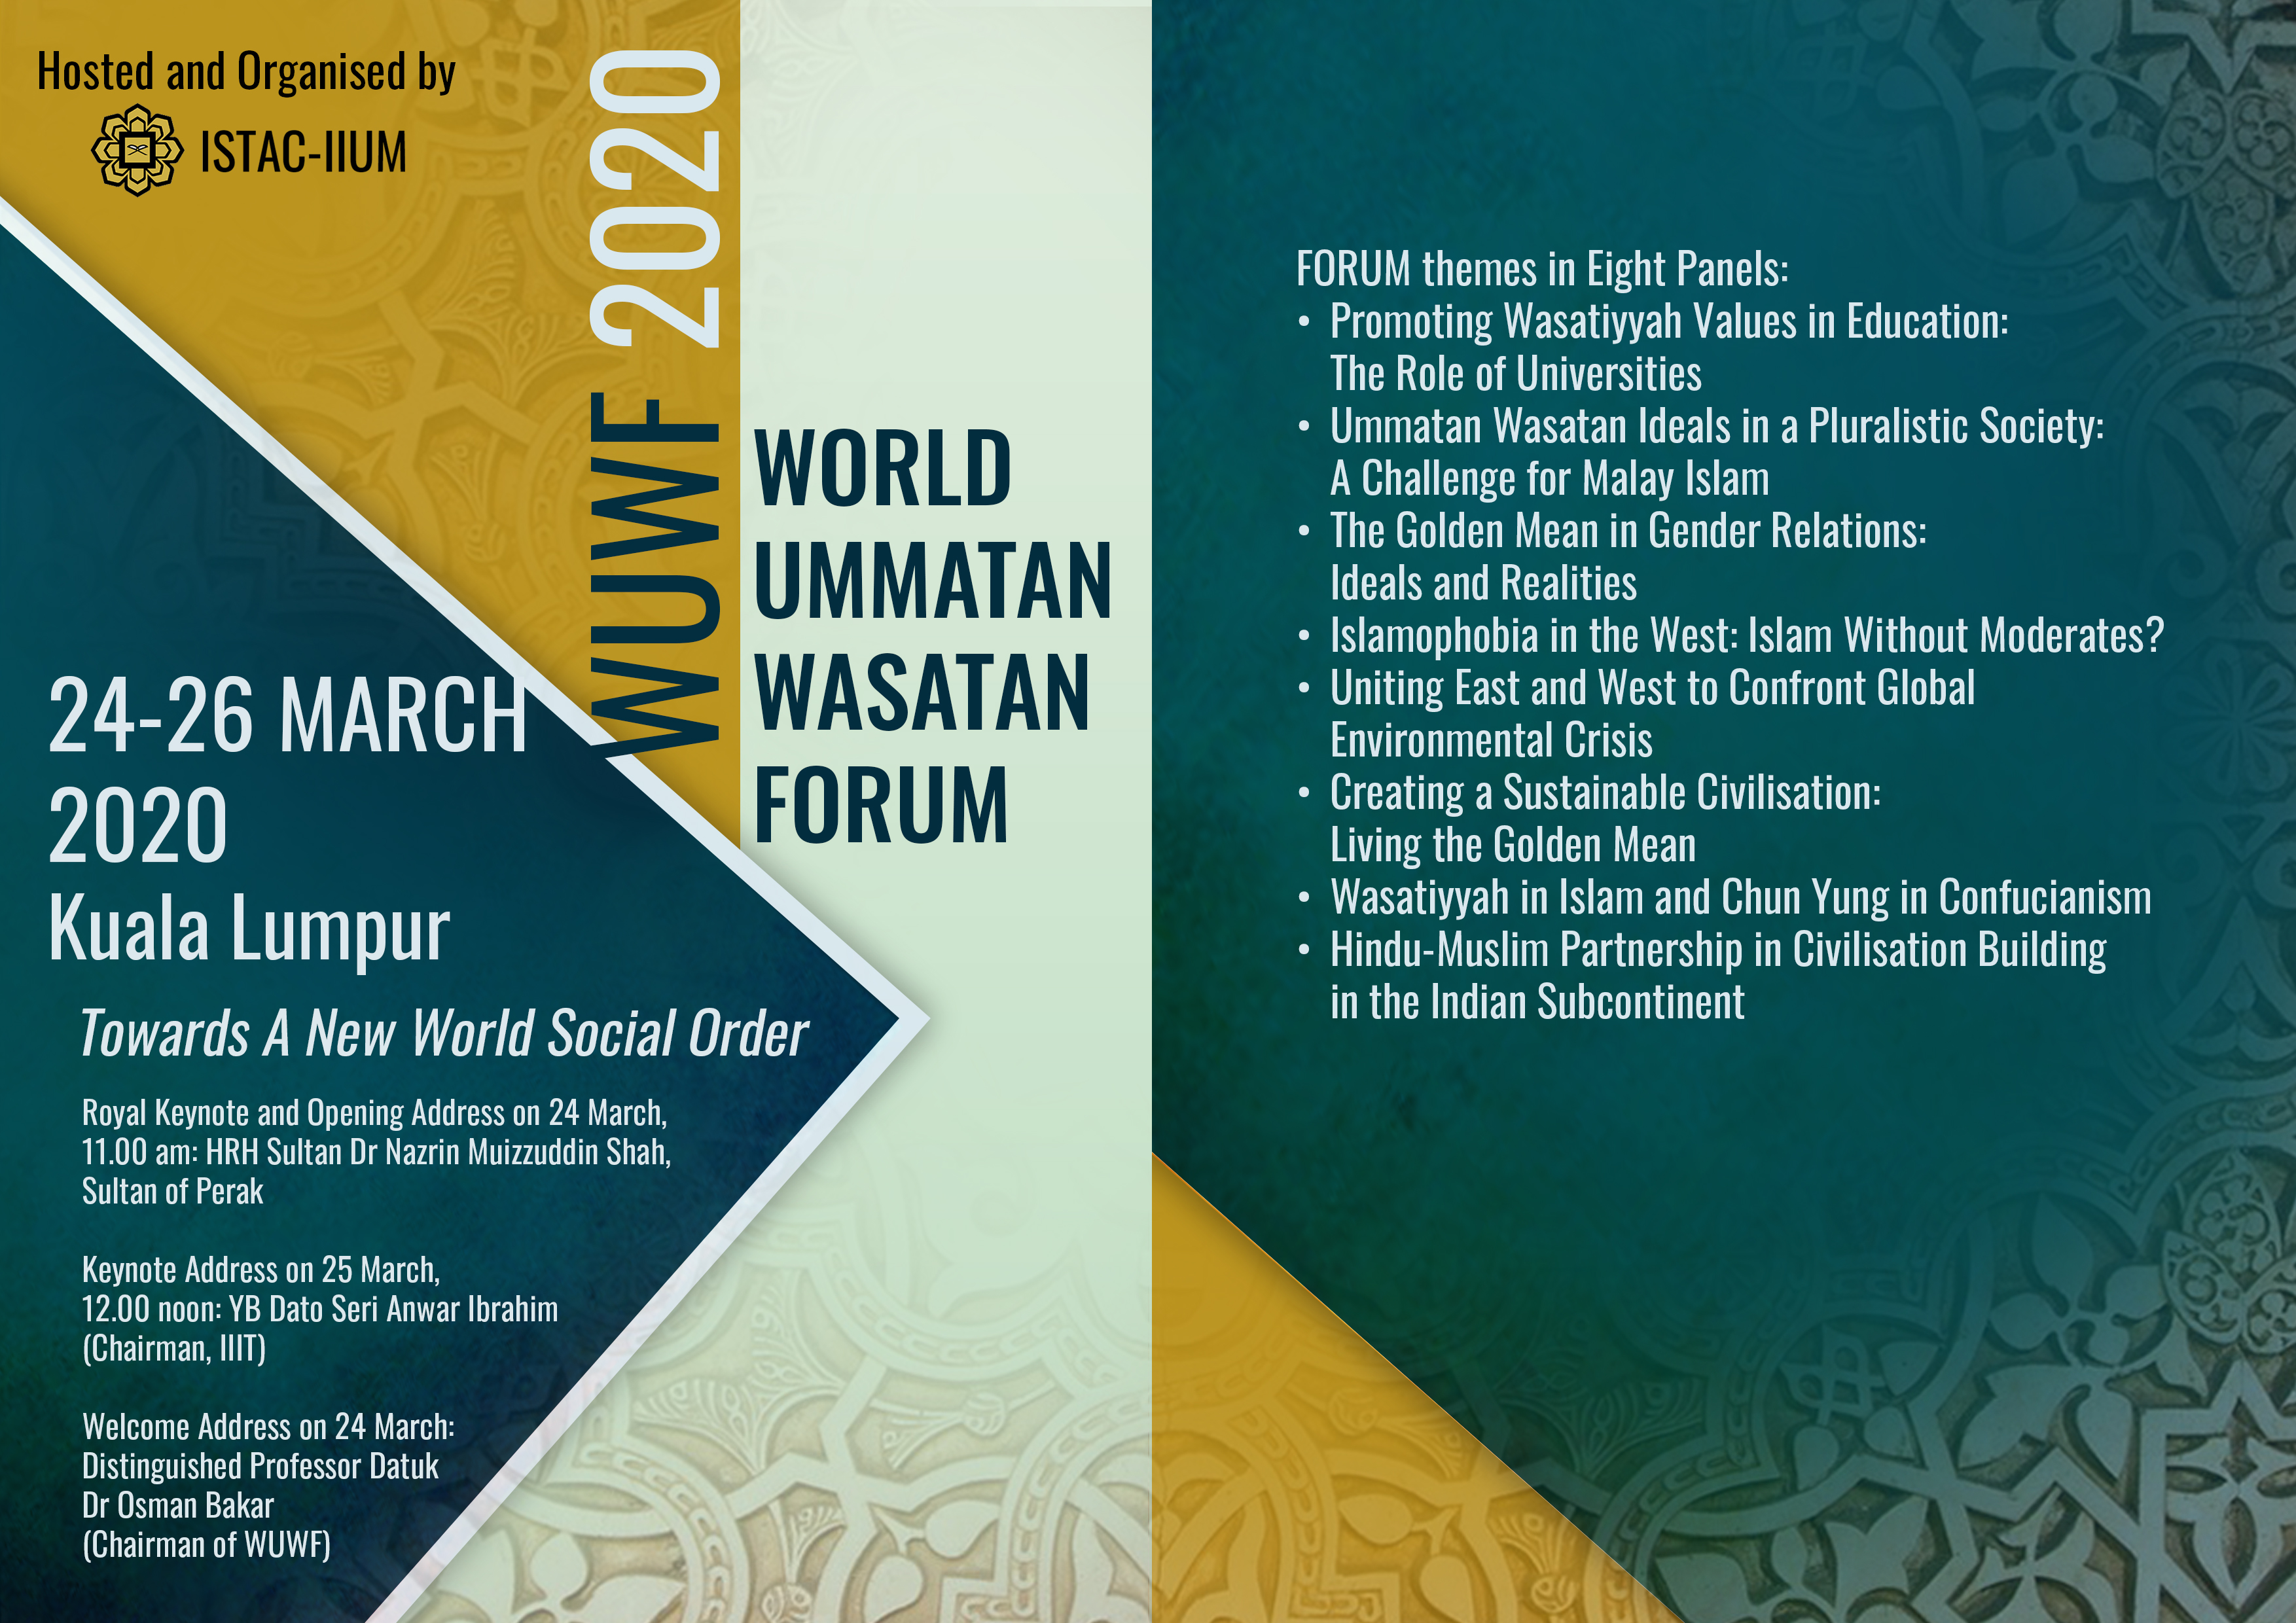 WORLD UMMATAN WASATAN FORUM 2020